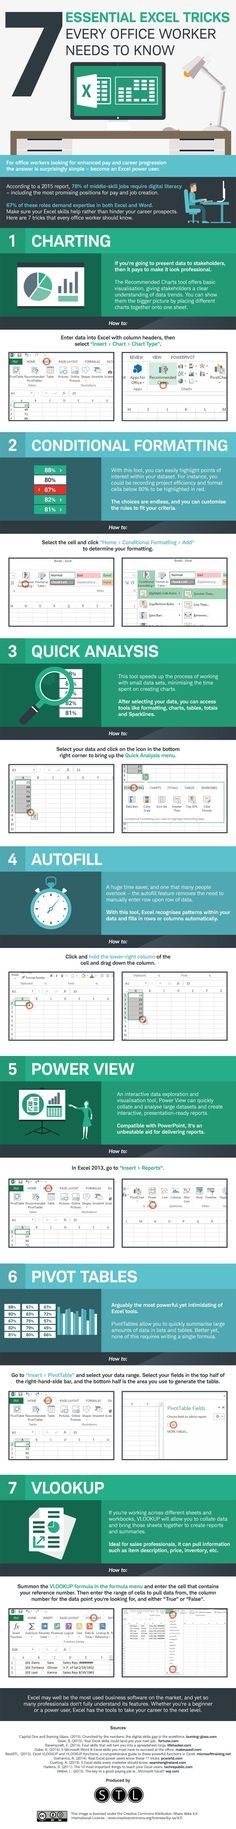 56 best Microsoft excel images on Pinterest Computer tips - microsoft spreadsheet